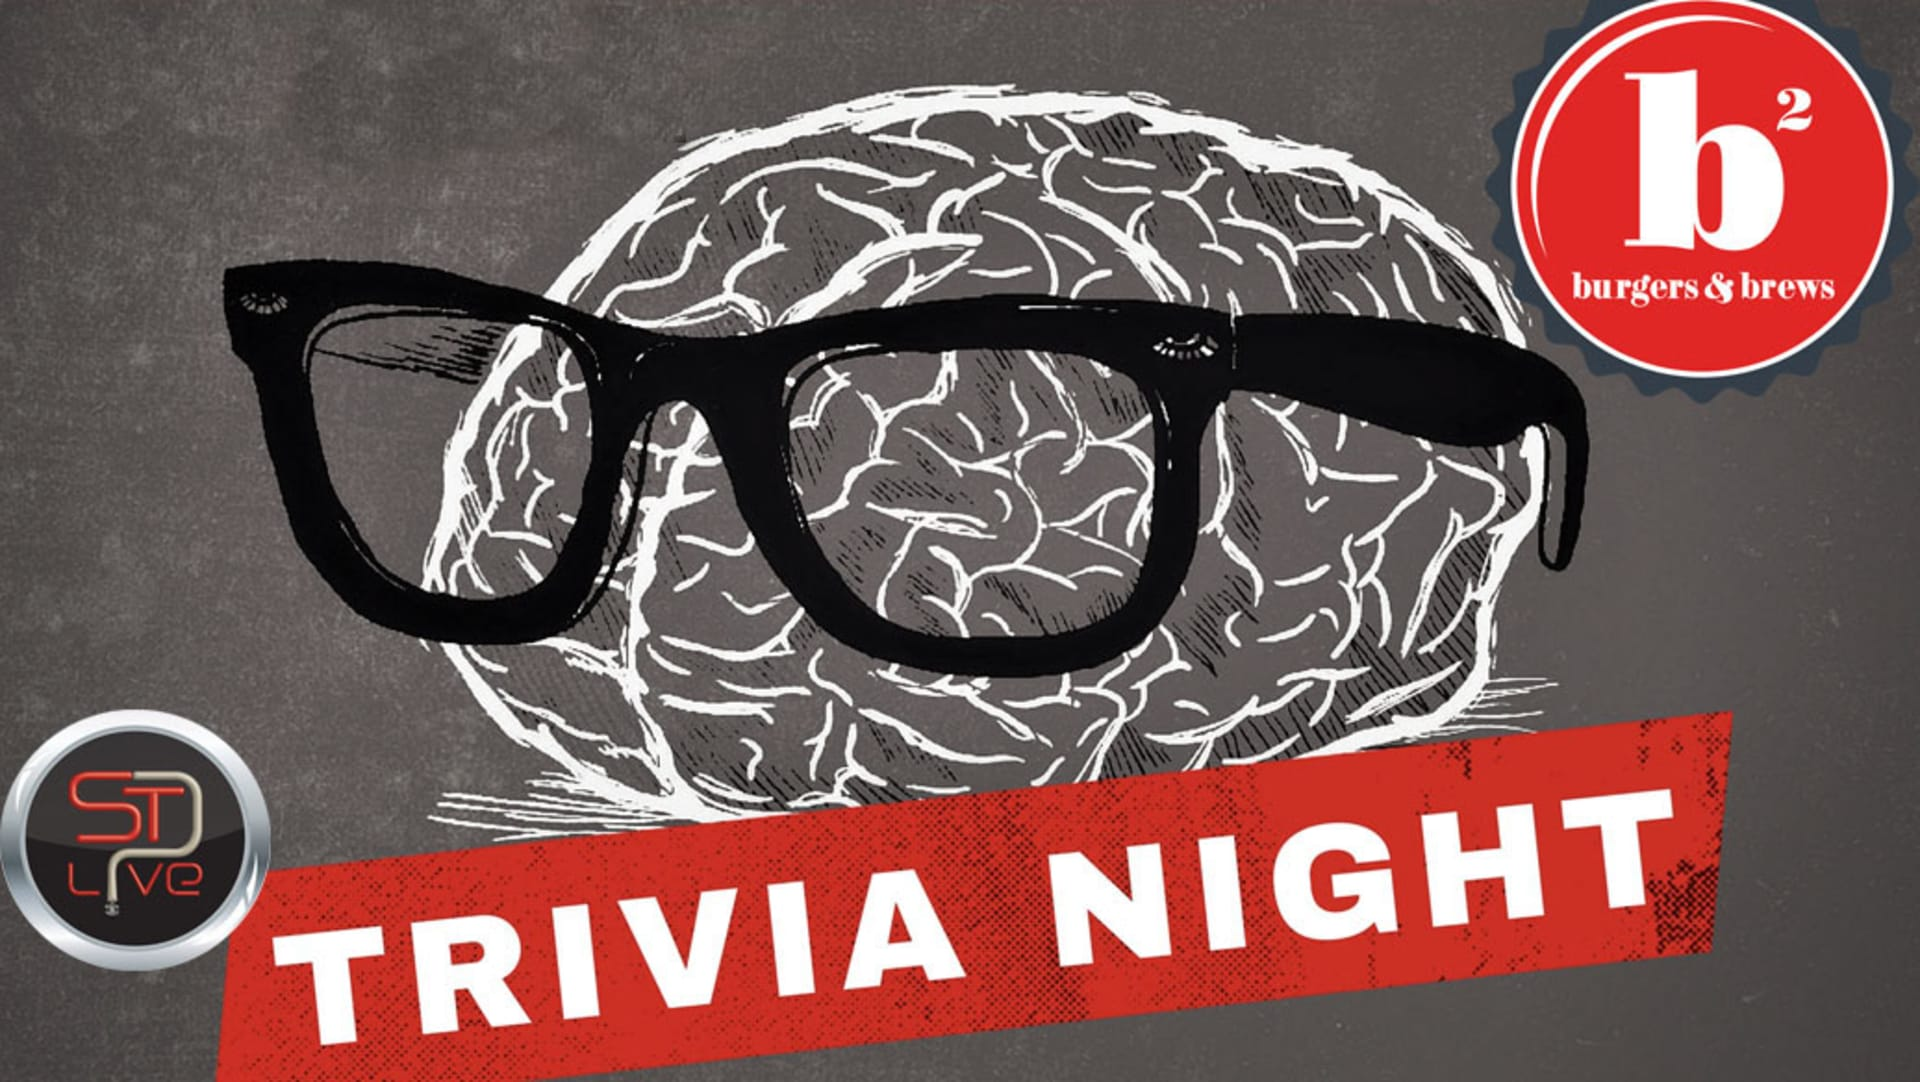 Live Trivia at b² every Wednesday